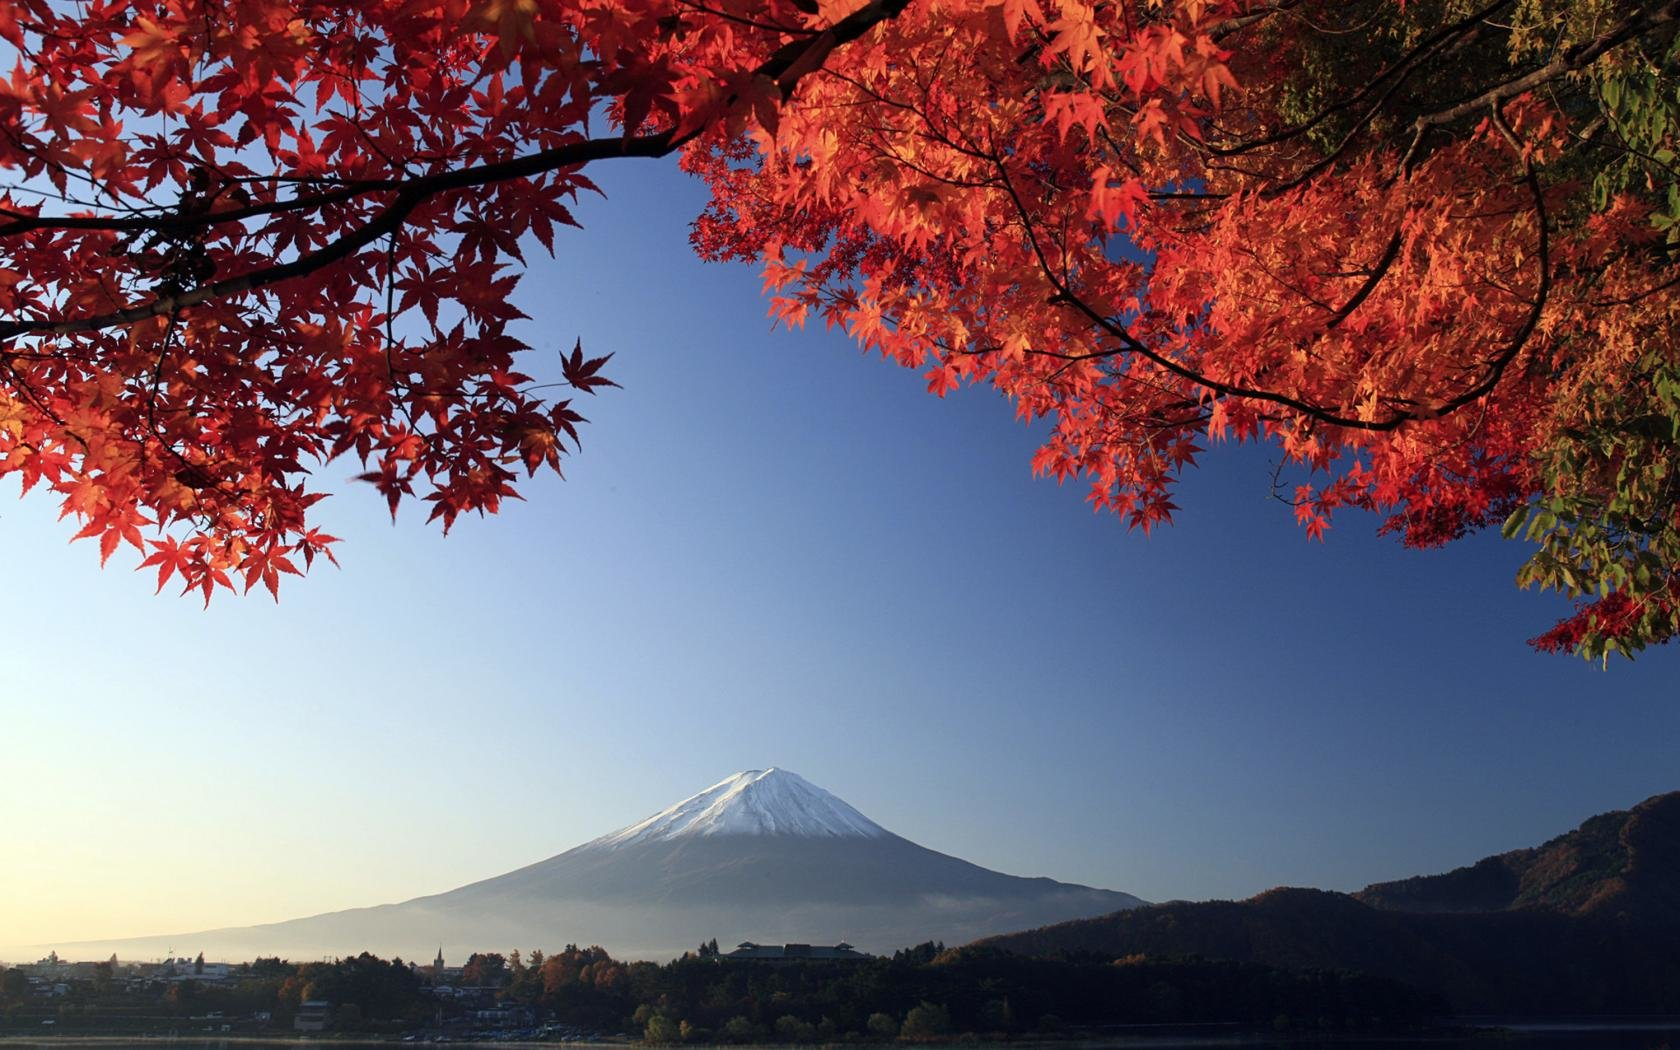 Download hd 1680x1050 Mount Fuji desktop background ID:277724 for free